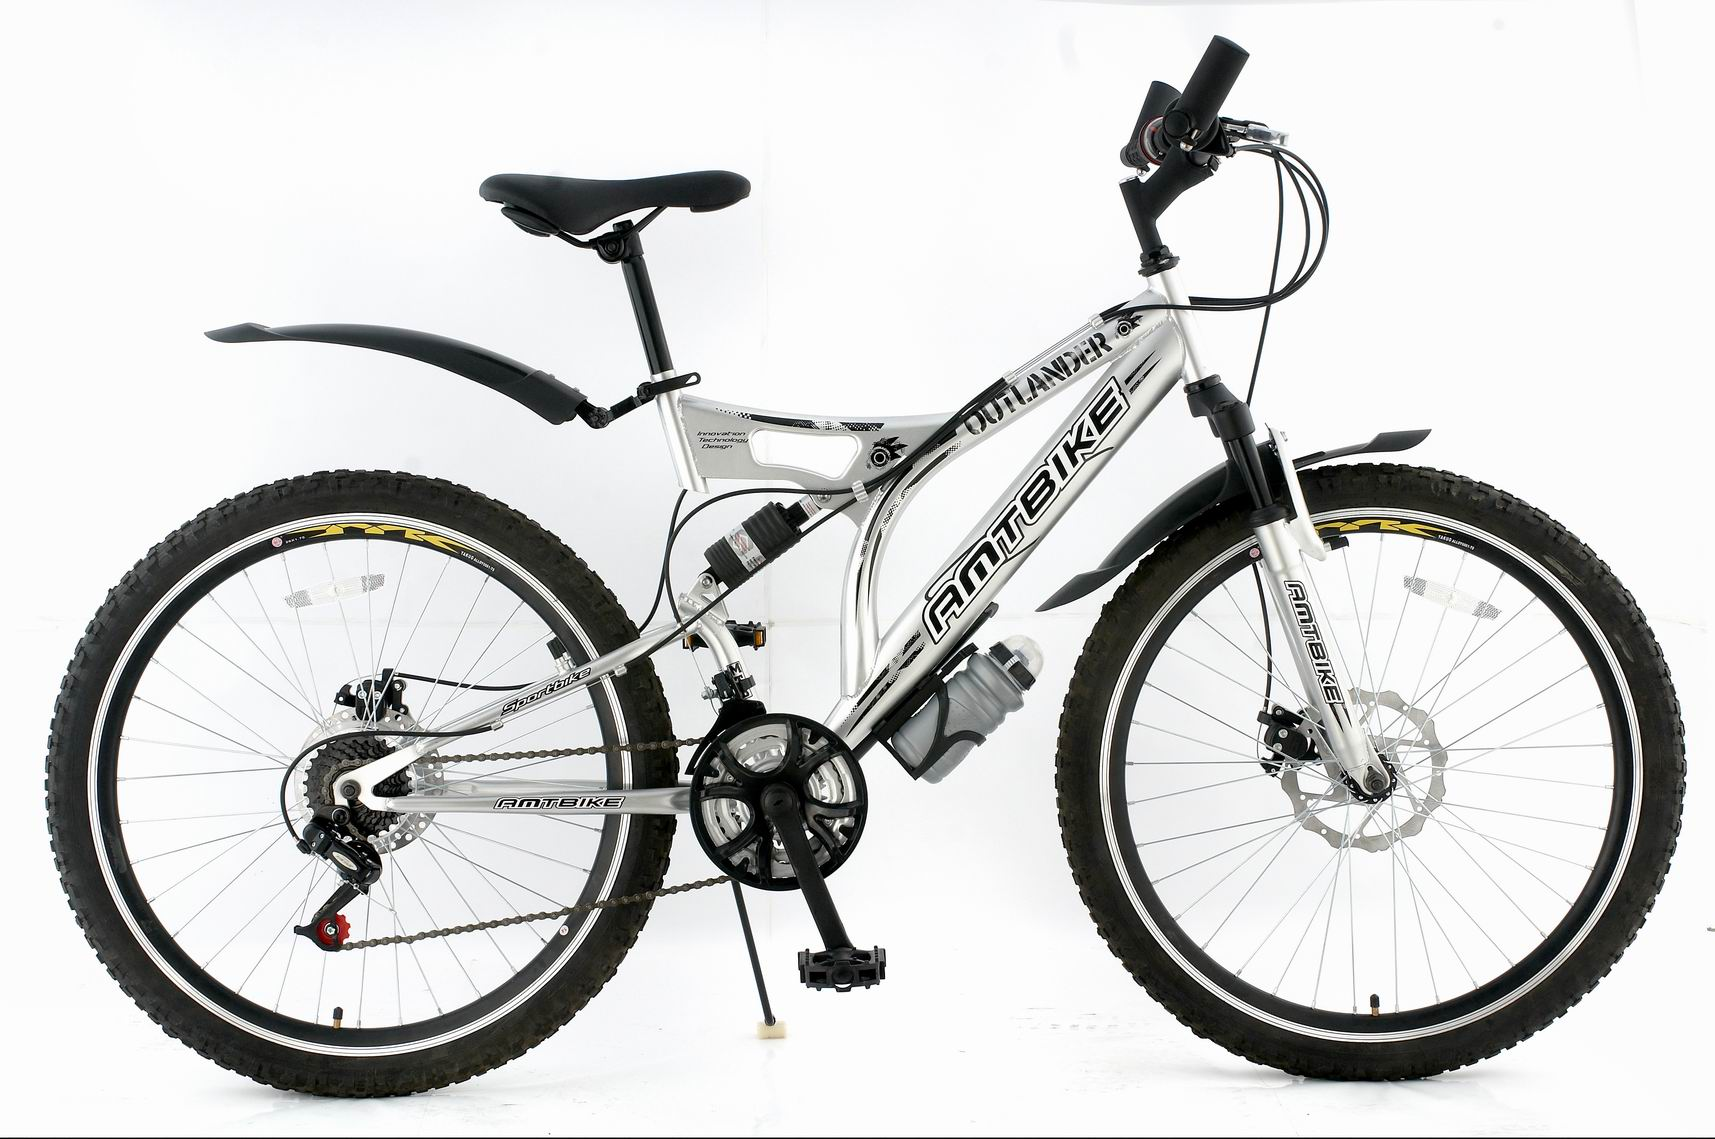 Mountain Bike/ Bicycle/ Bike Dmb-020